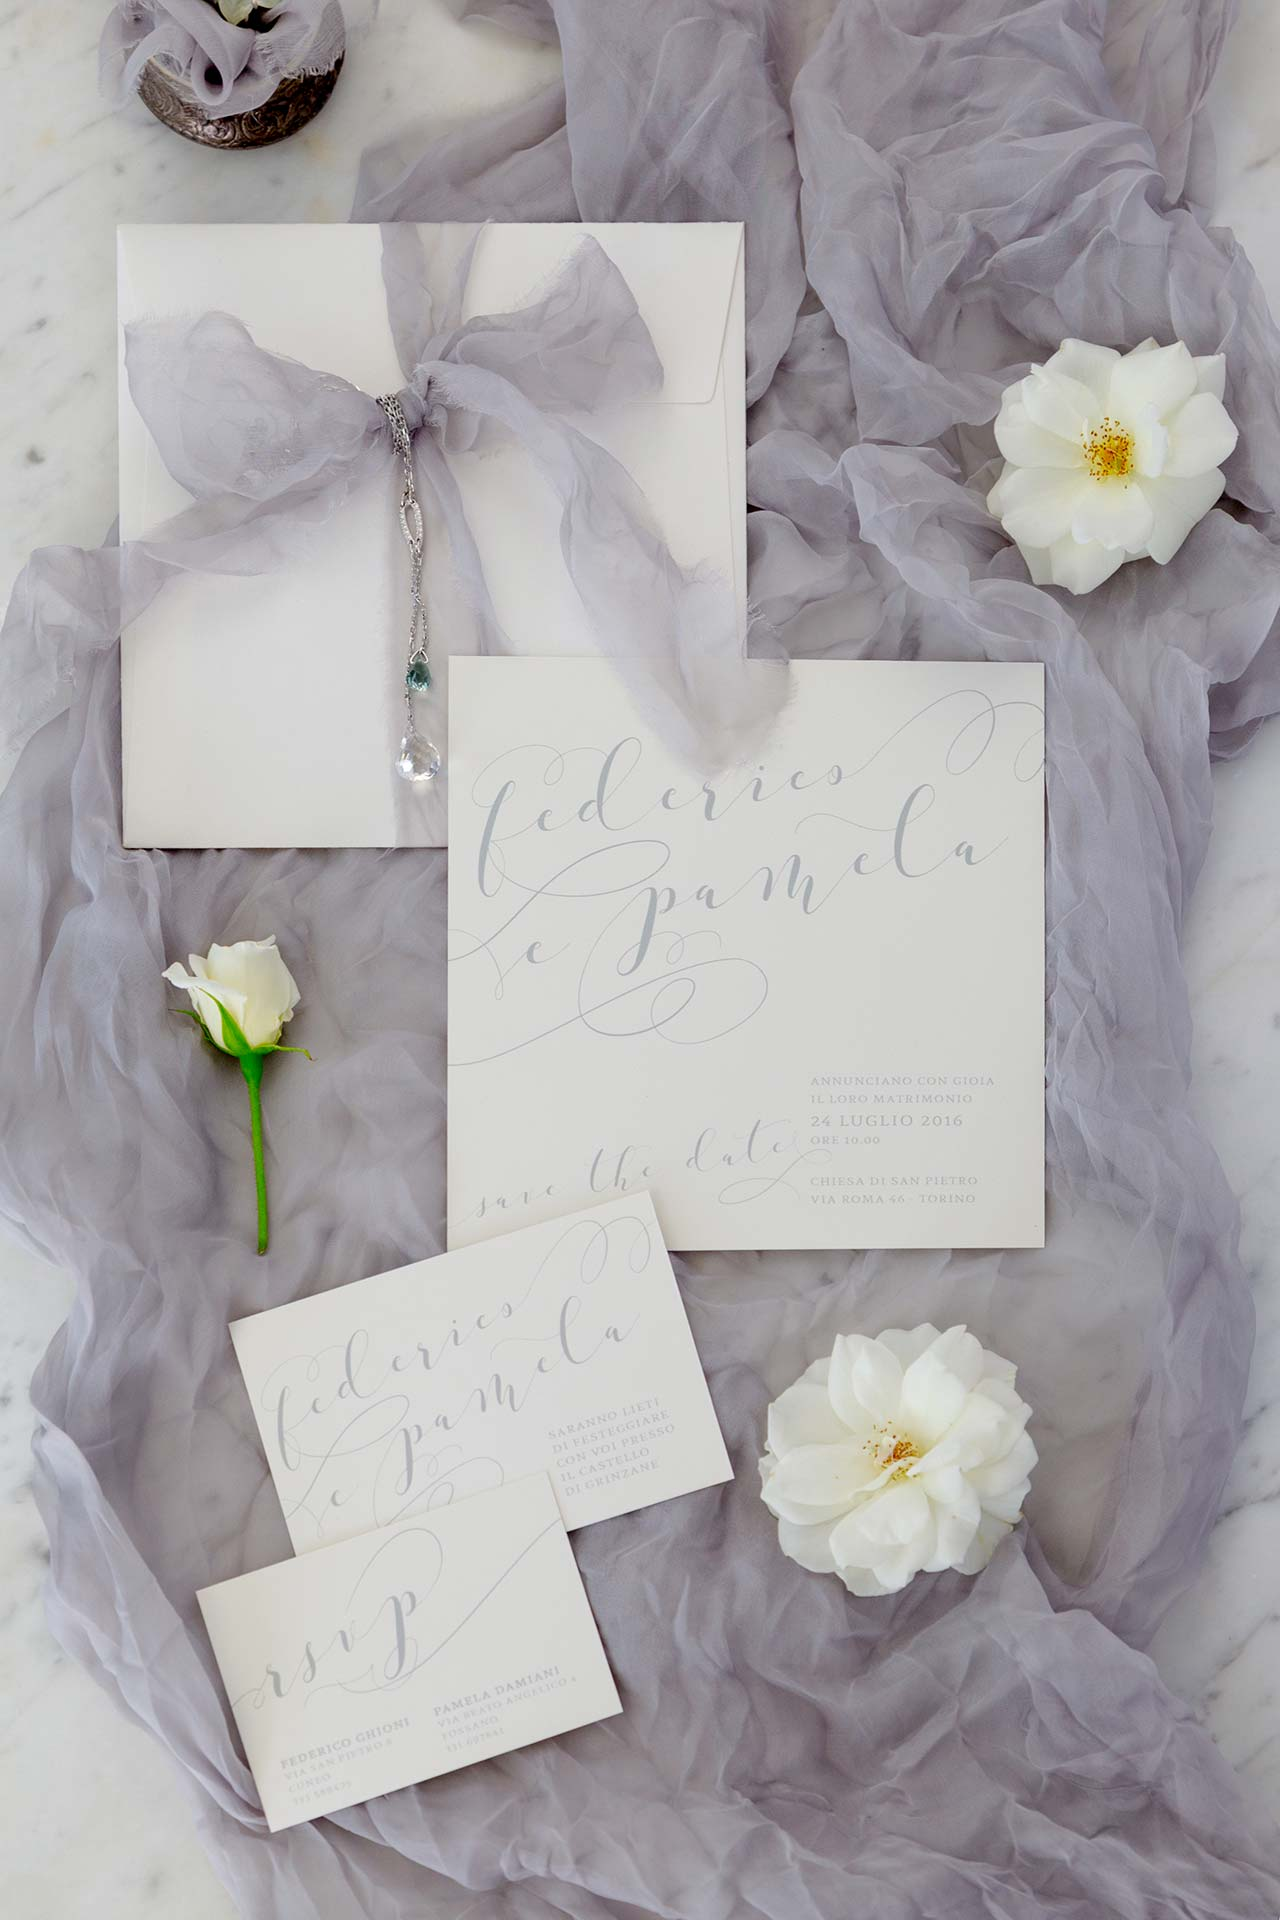 """Douce calligraphie"" wedding suite"